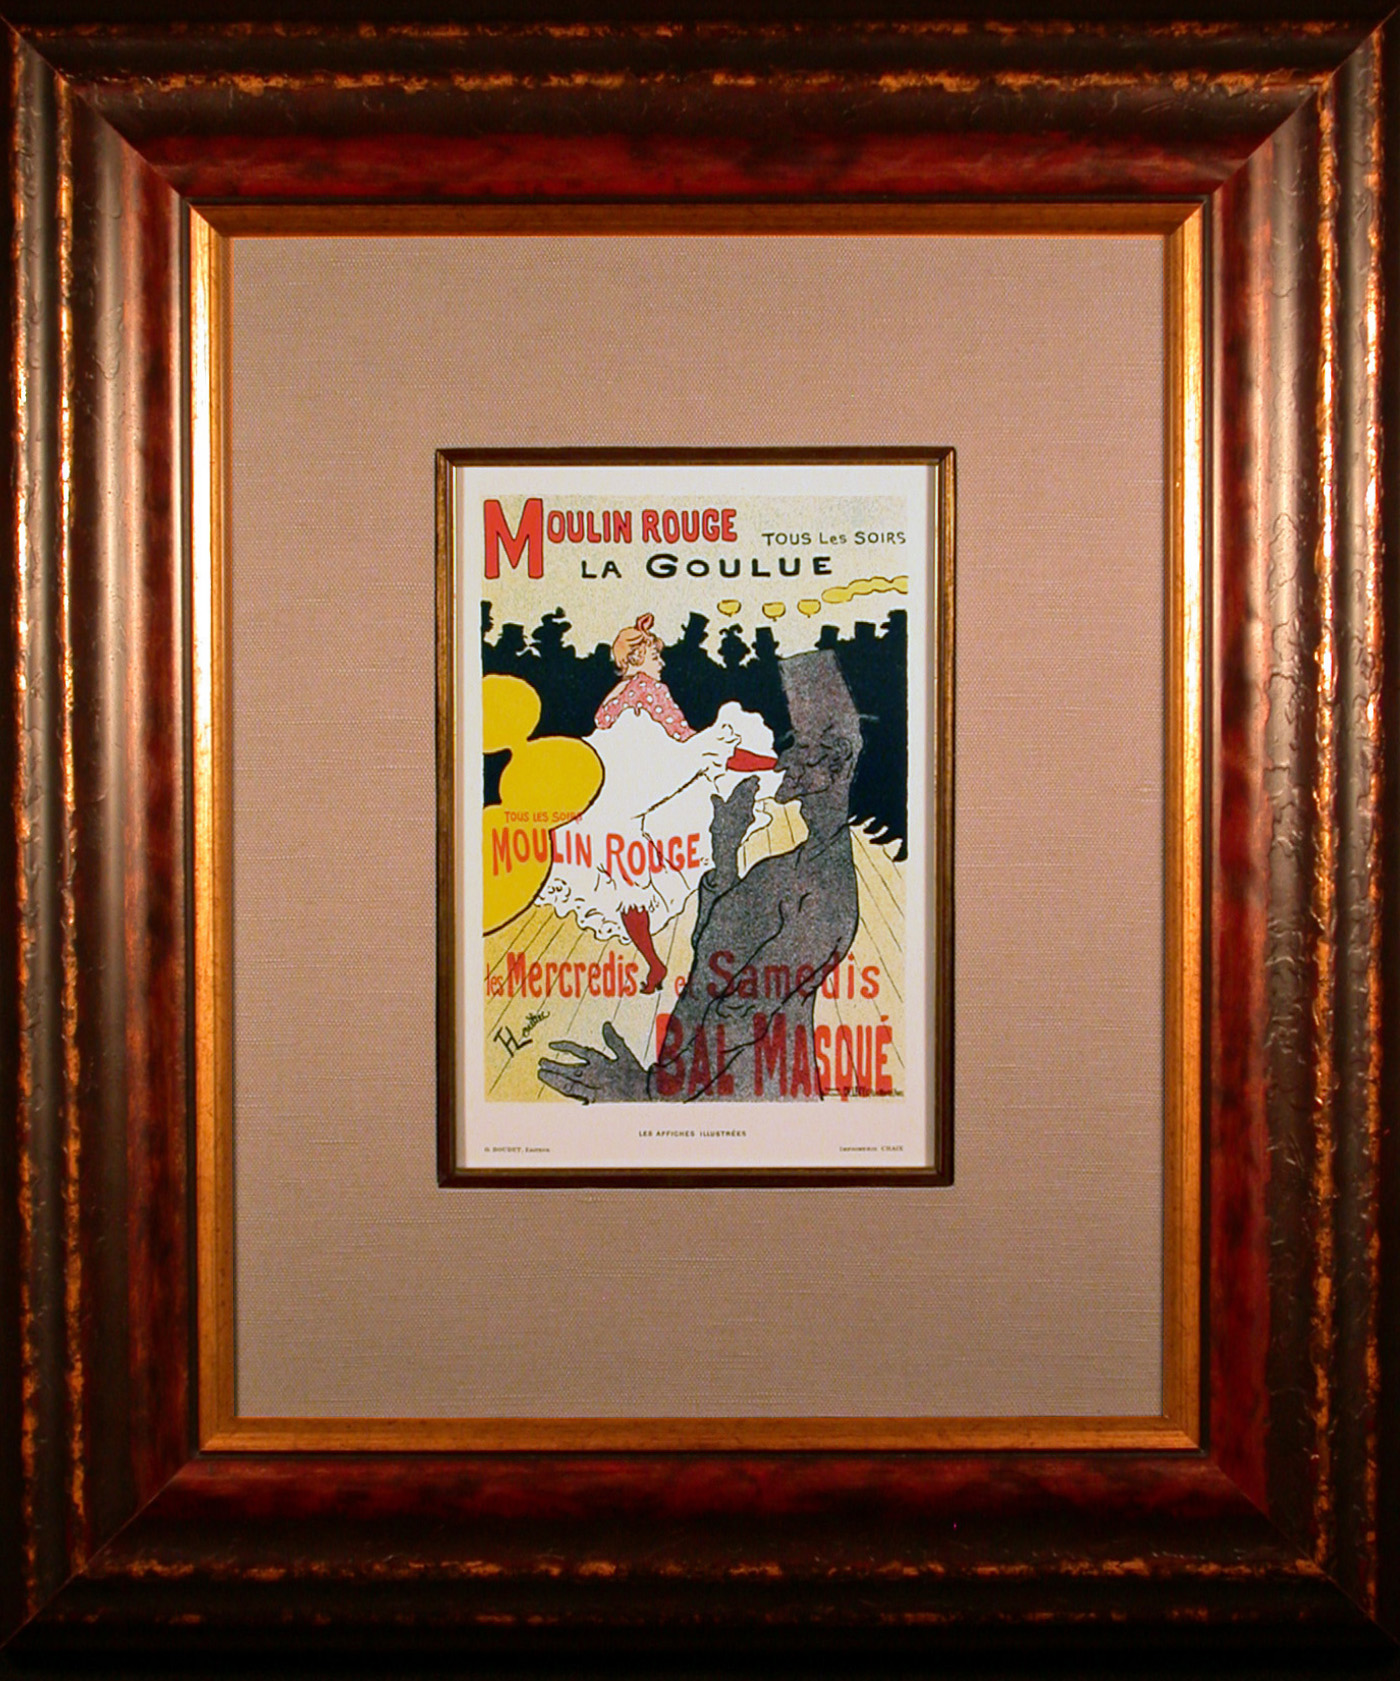 Moulin Rouge La Goulue Color Lithograph after Toulouse-Lautrec Framed and Matted